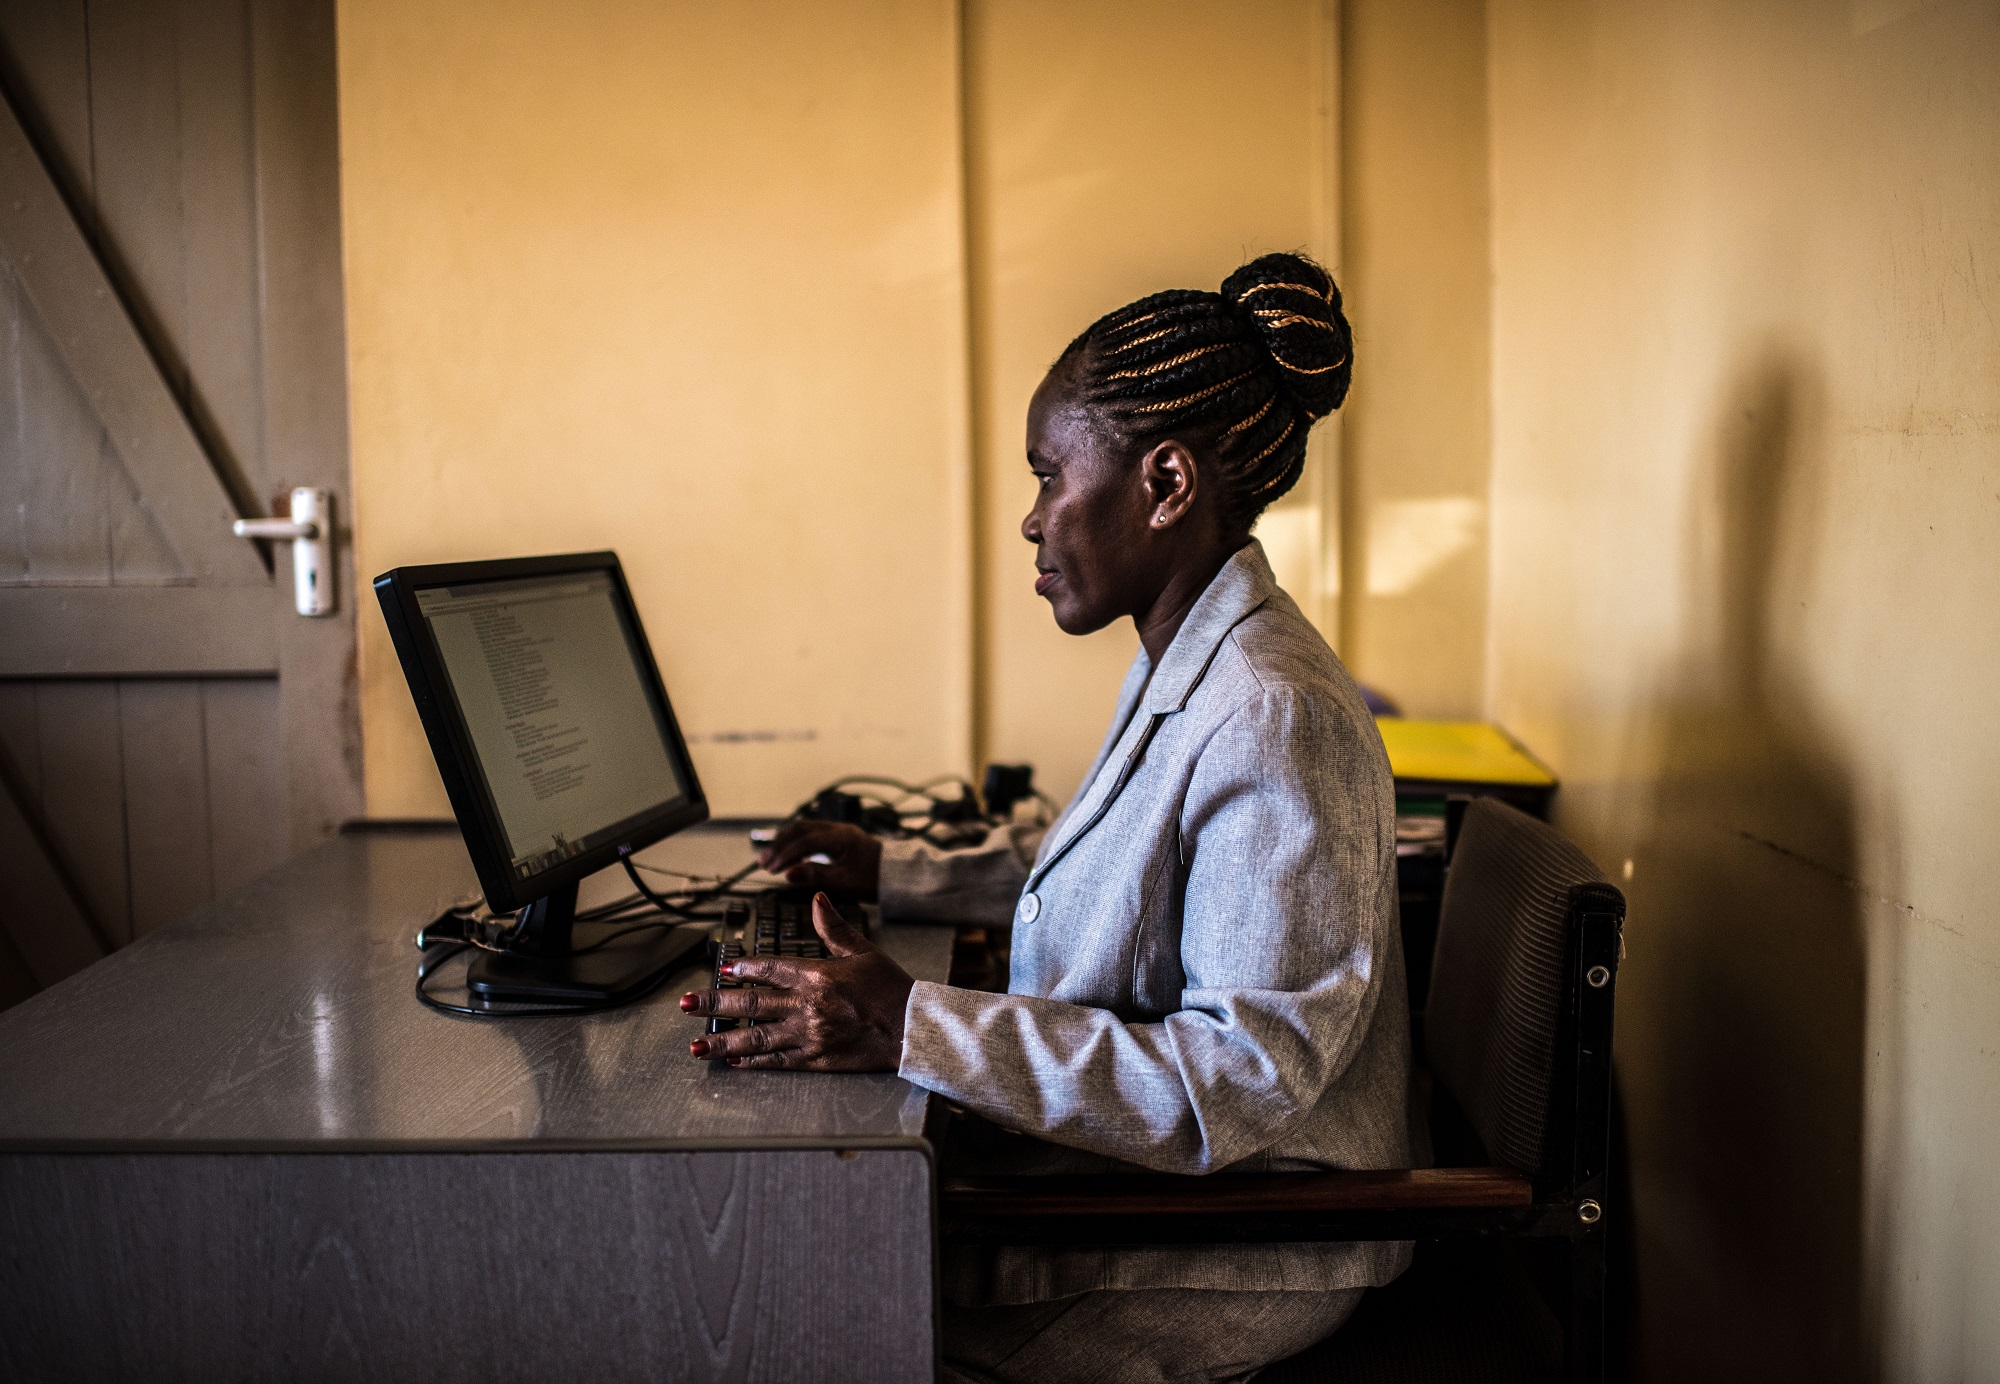 Justine Kaboole, regional focal person for Hris in Iganga, Uganda, uses the software on her comuter at the DHO's headquarters.